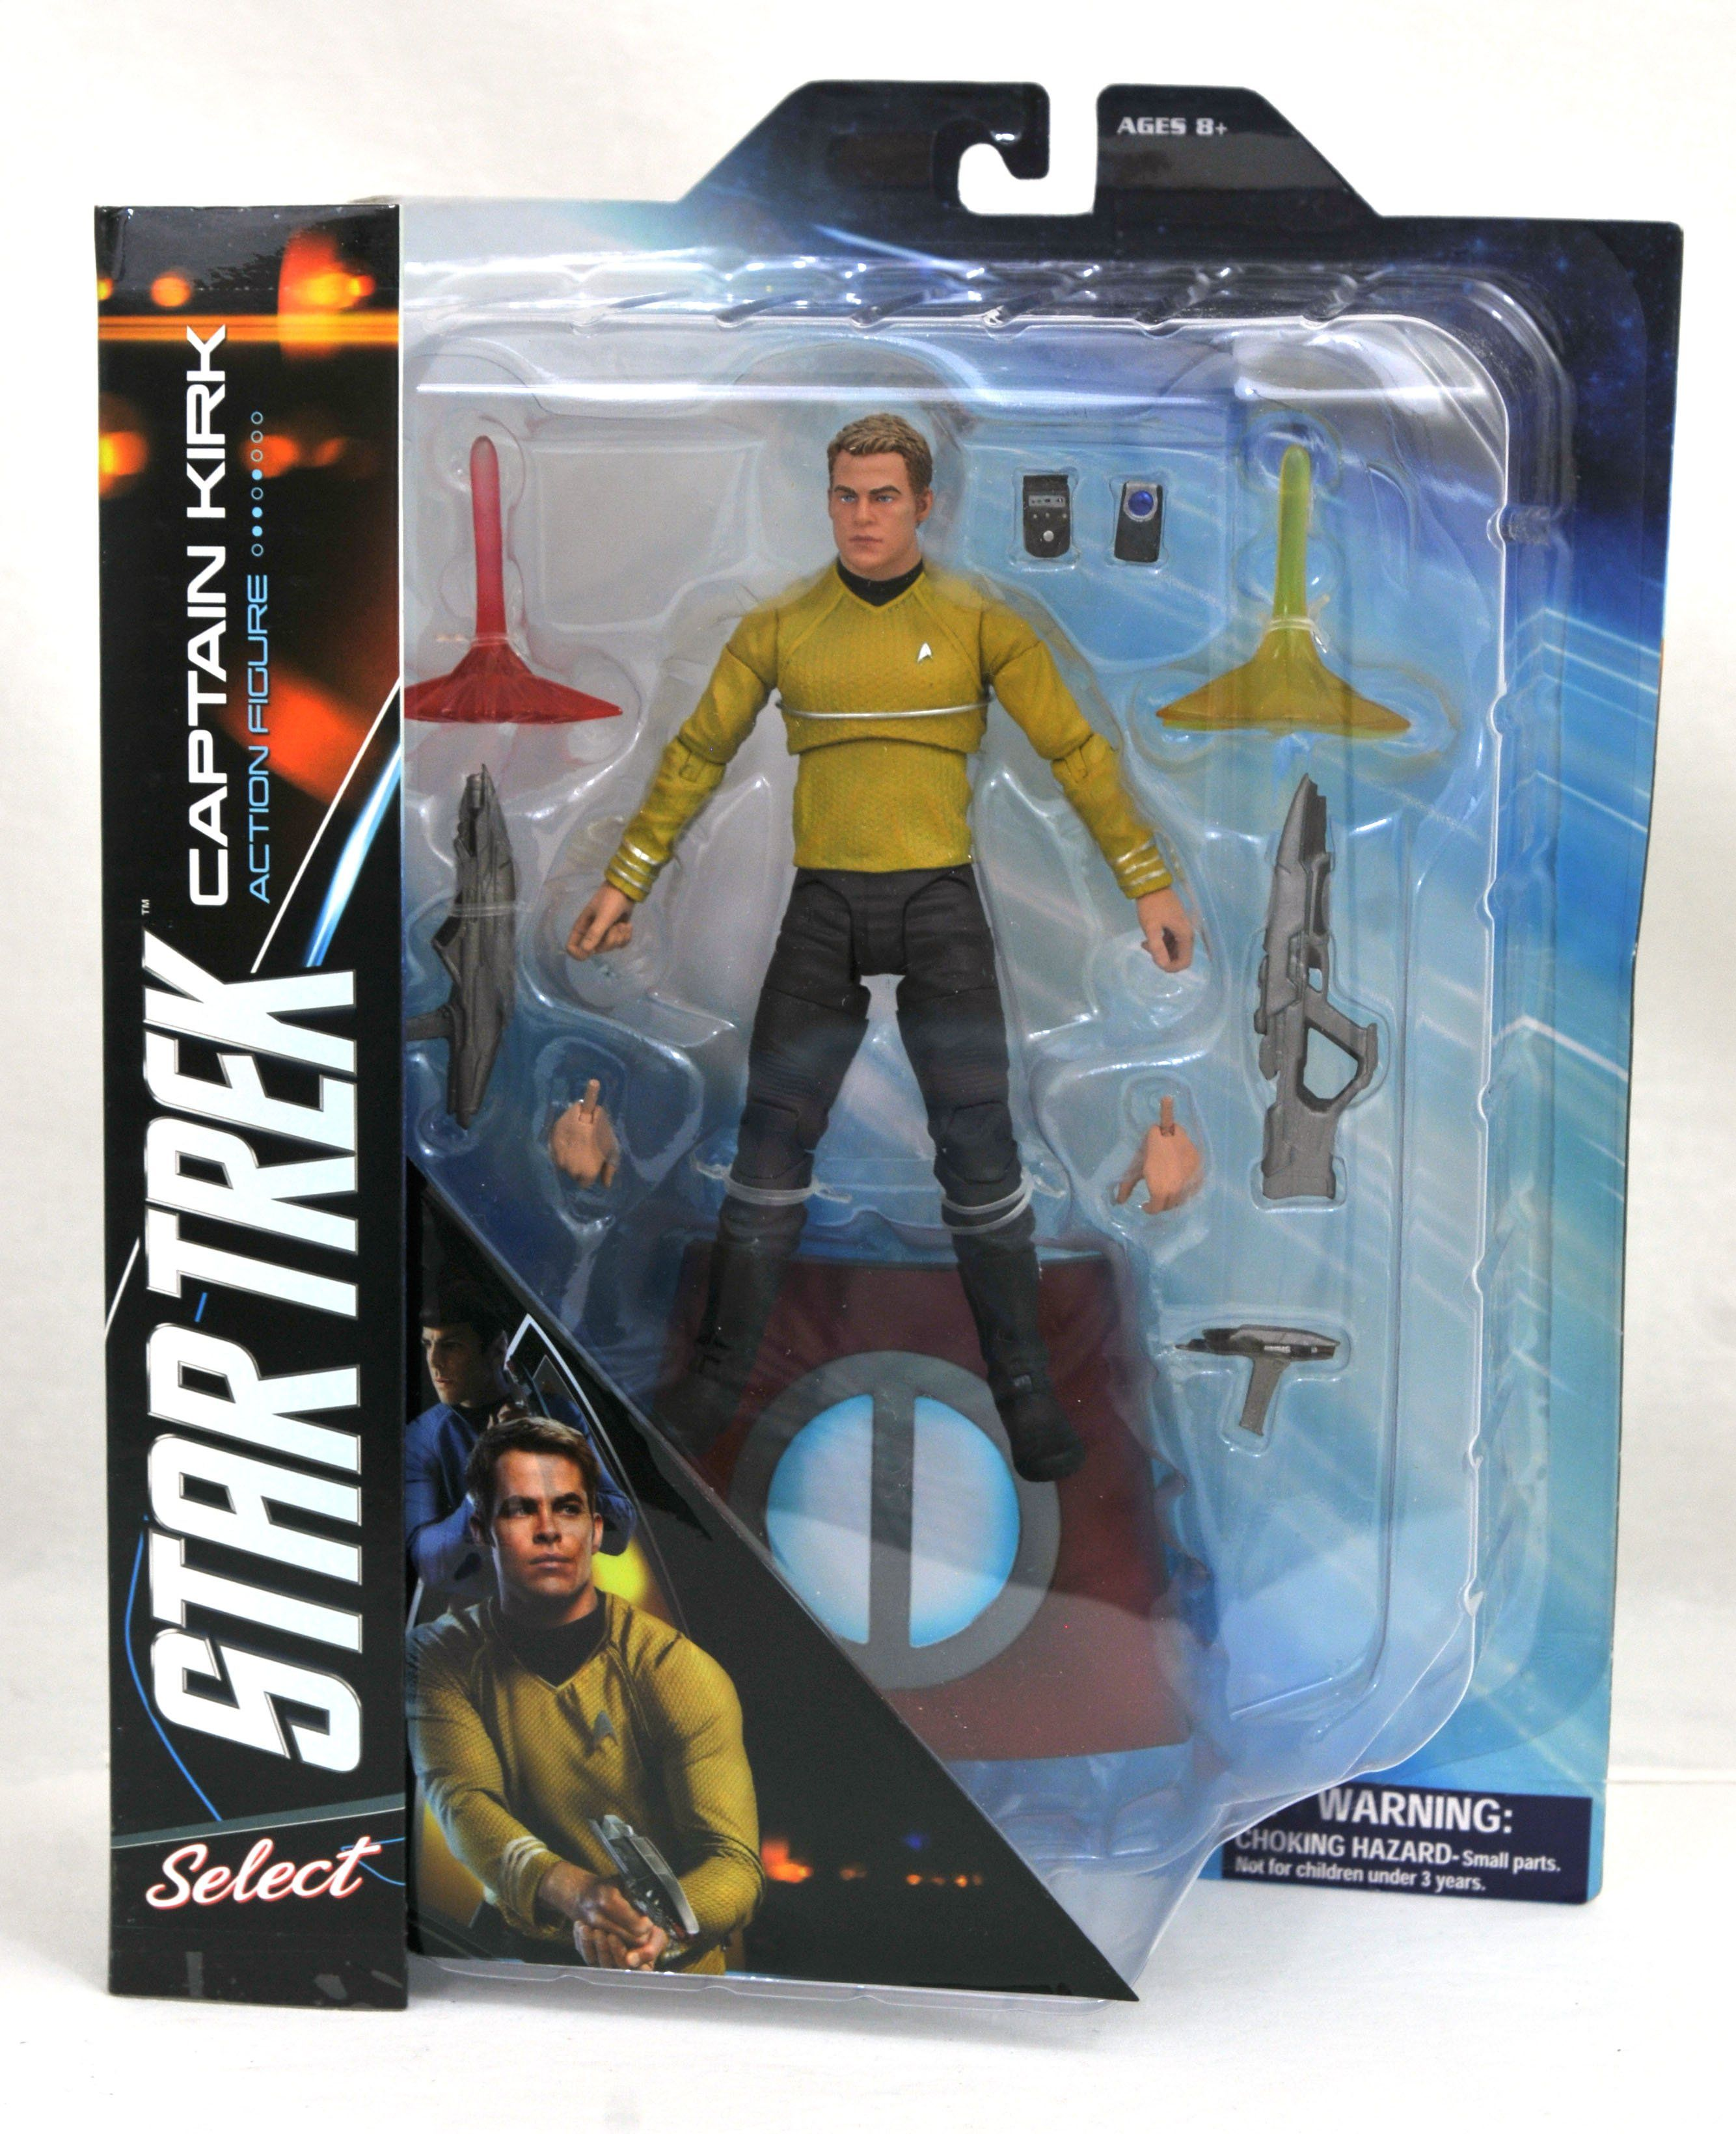 Diamond Select Toys Star Trek Movie Spock Action Figure